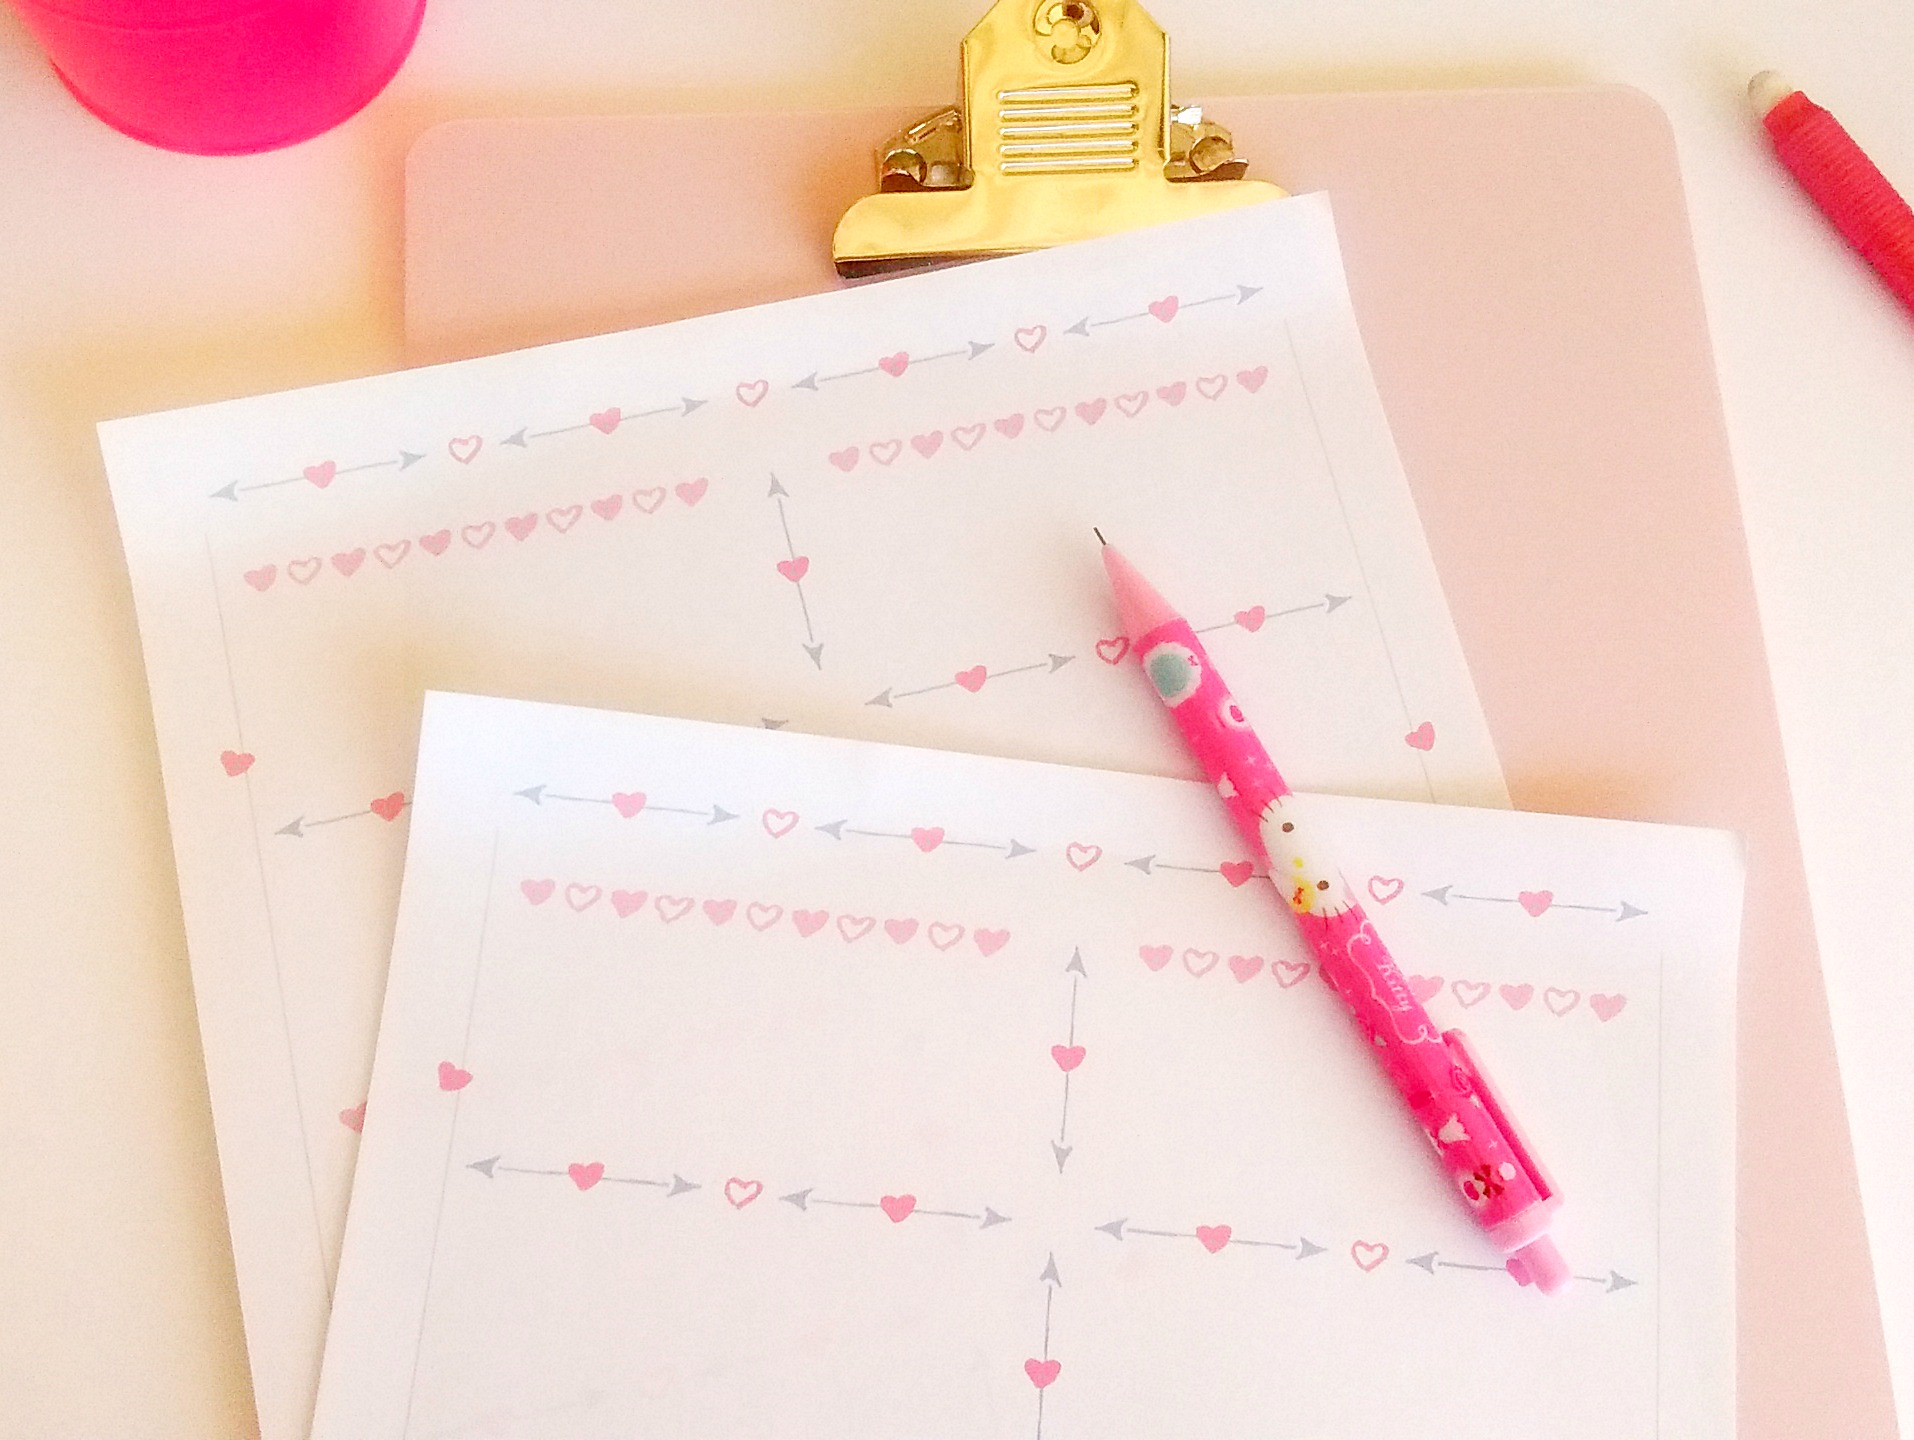 Hearts And Arrows Free Printable Planning Worksheet